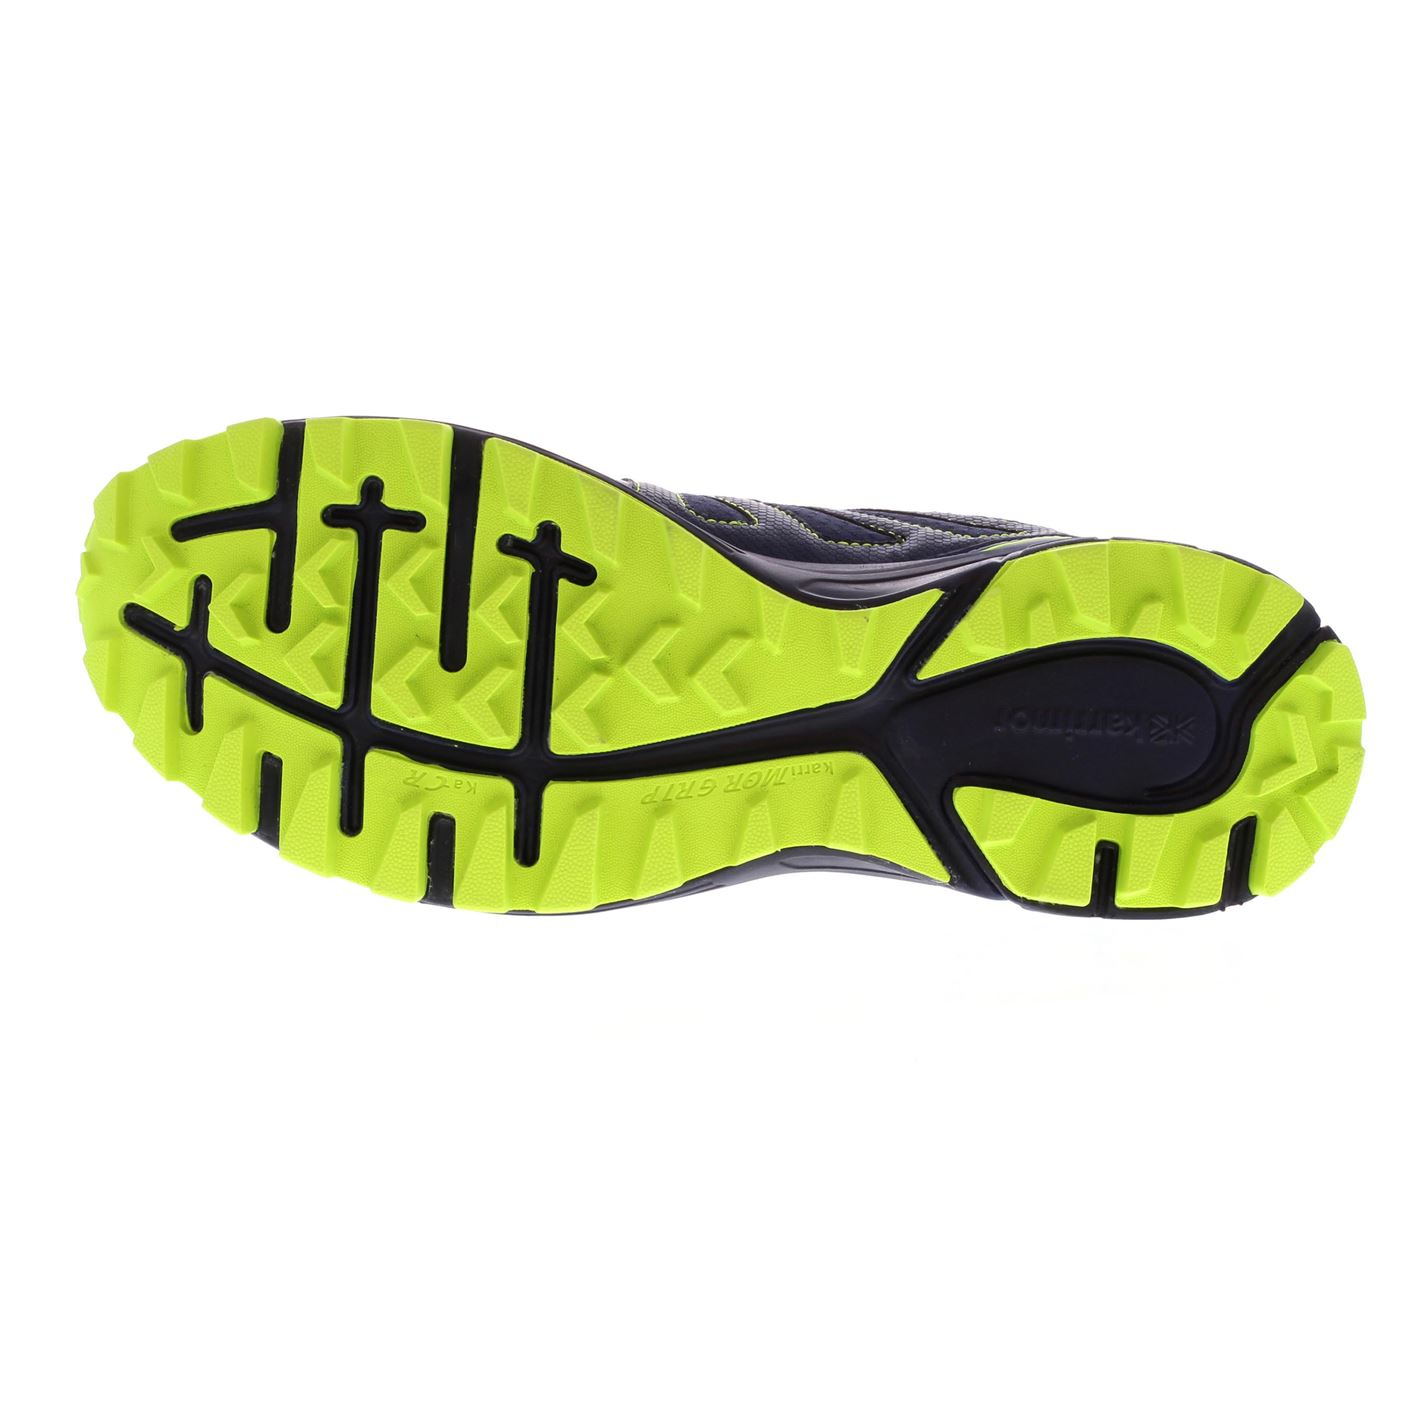 Karrimor-Mens-Caracal-Waterproof-Trail-Running-Shoes-Trainers-Lace-Up-Breathable thumbnail 4